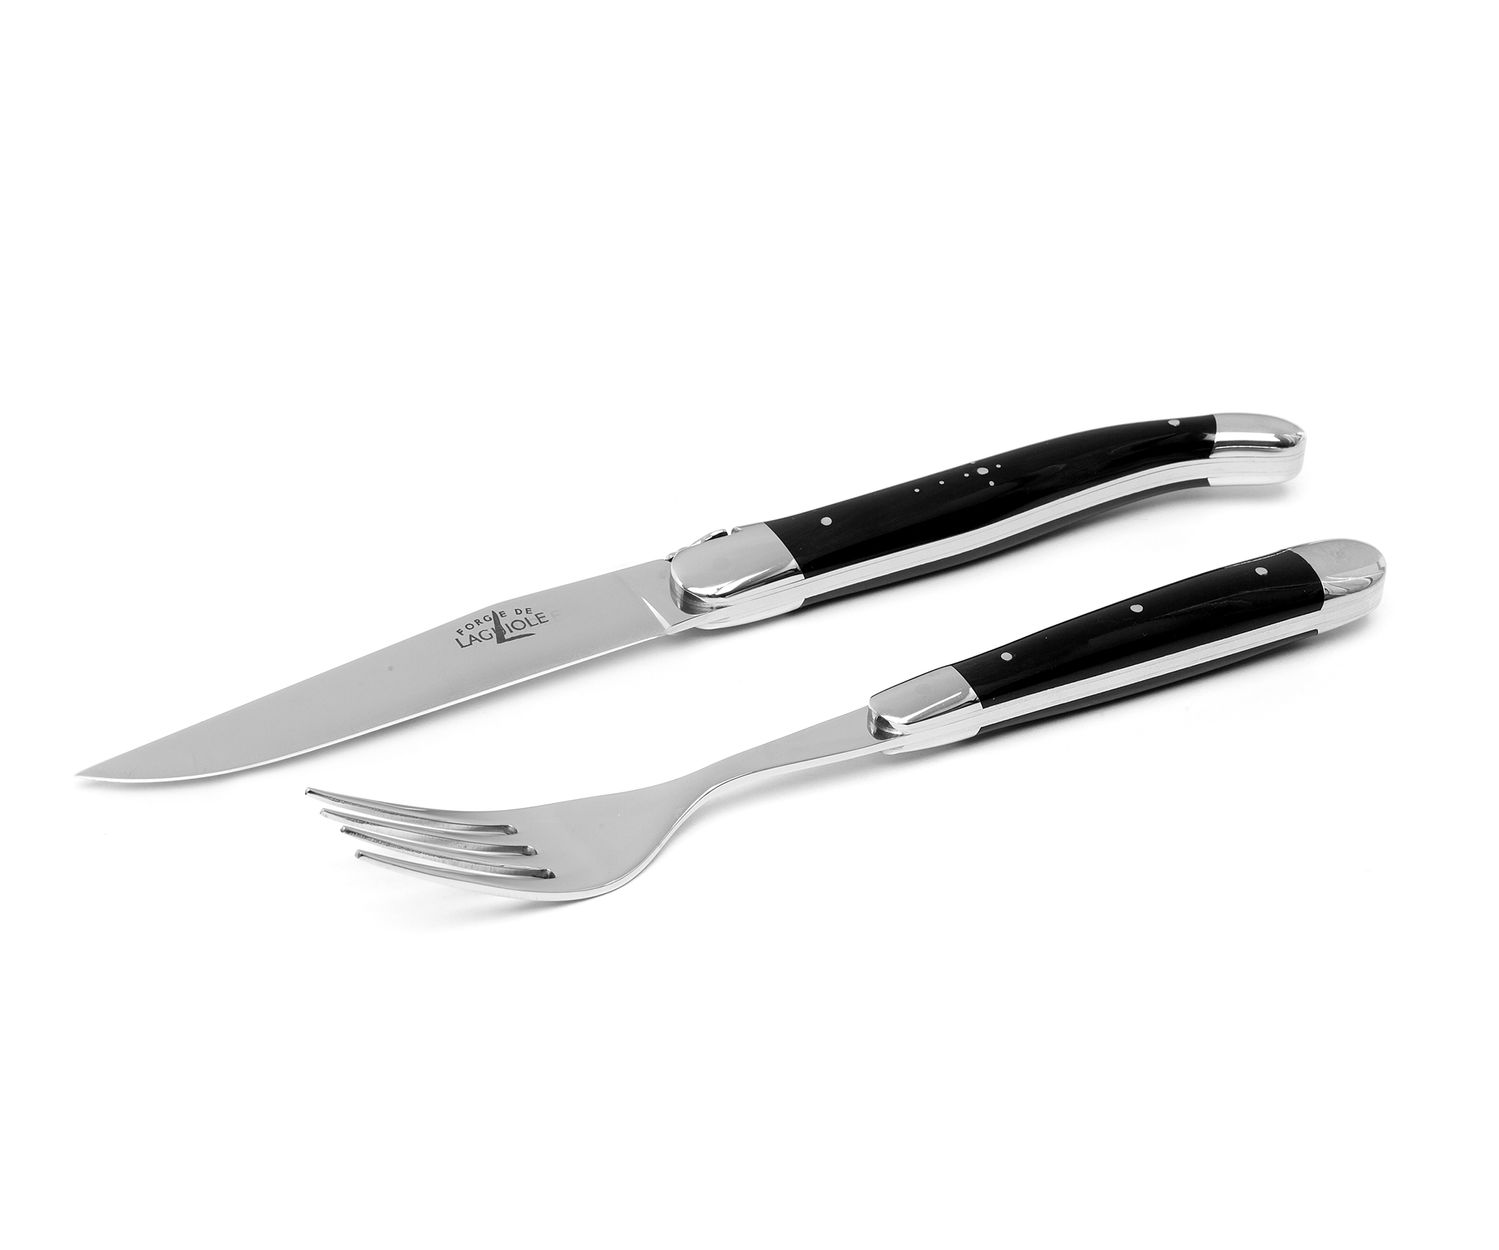 Forge de Laguiole Steak-Set 2-tlg, Horn